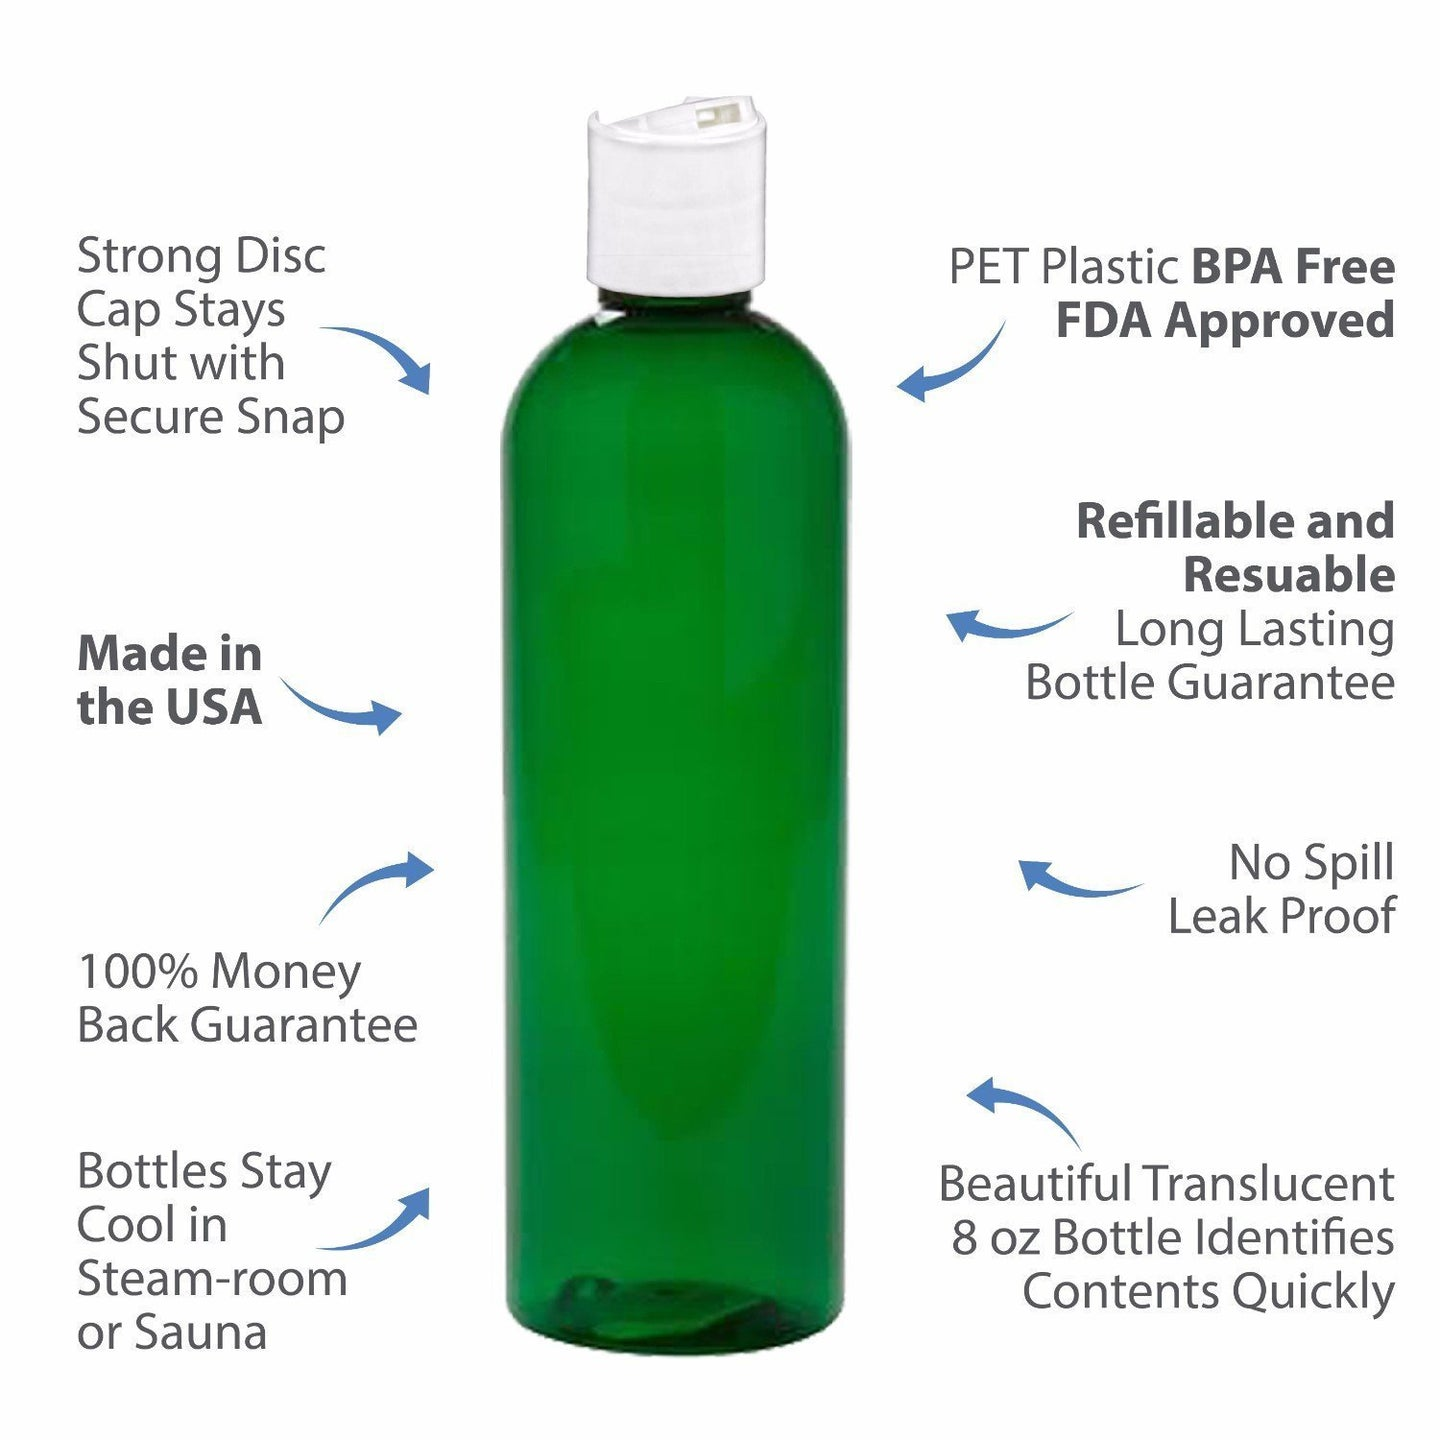 MoYo Natural Labs 8 oz Travel Bottles, Empty Travel Containers with Disc Caps, BPA Free PET Plastic Squeezable Toiletry/Cosmetic Bottles (Pack of 8, Green)